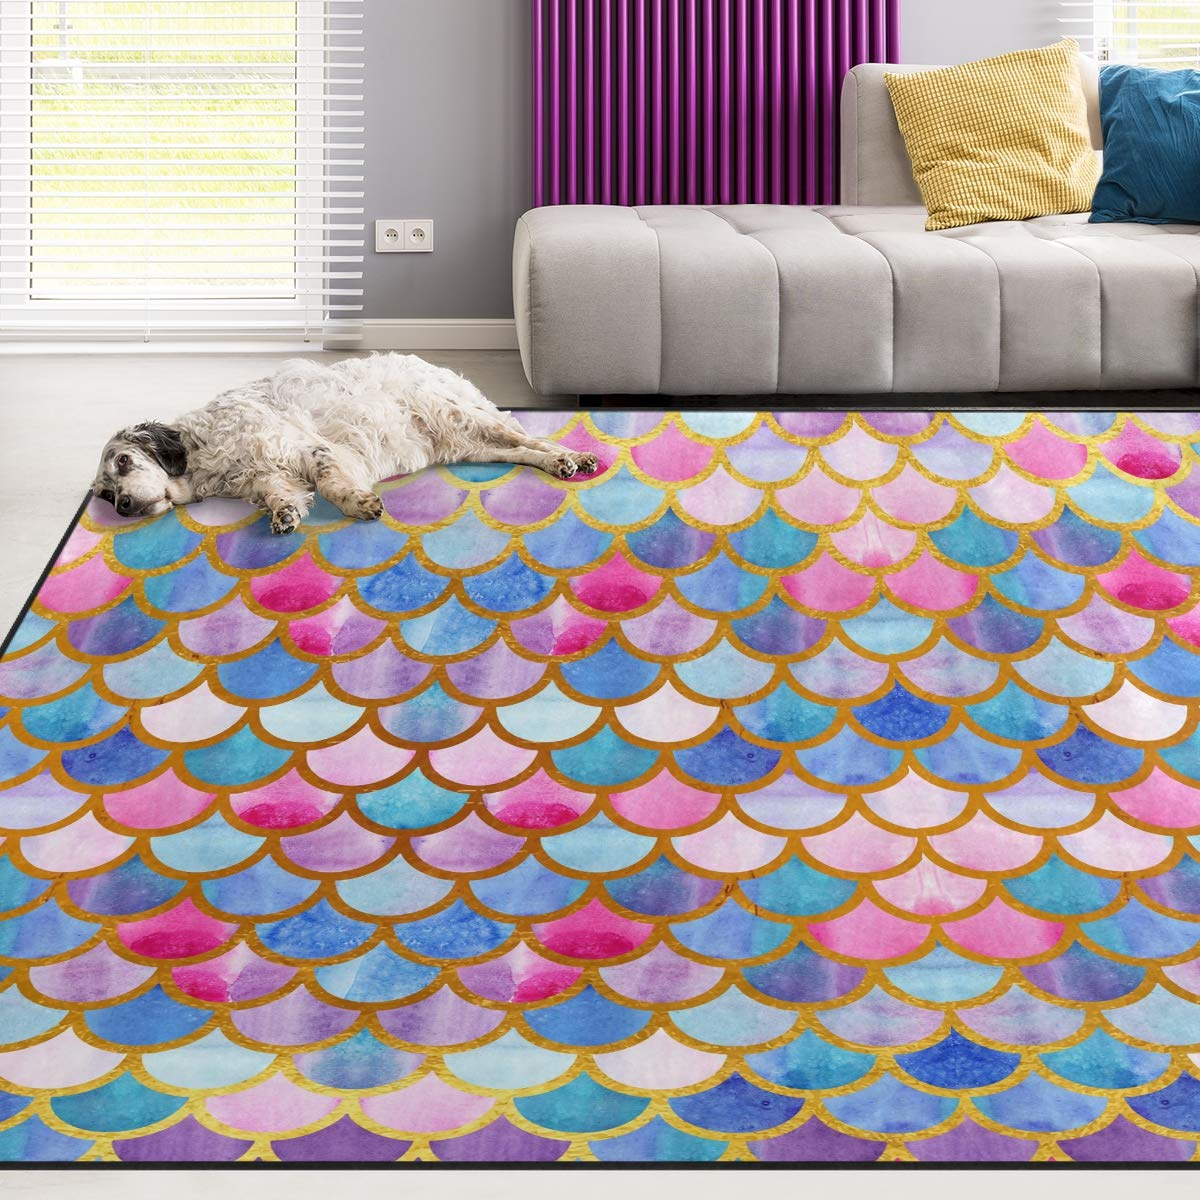 Naanle Watercolor Rainbow Mermaid Scale Non Slip Area Rug for Living Dinning Room Bedroom Kitchen, 1.7 'x 2.6'(20 x 31 inches), Colorful Abstract Nursery Rug Floor Carpet Yoga Mat